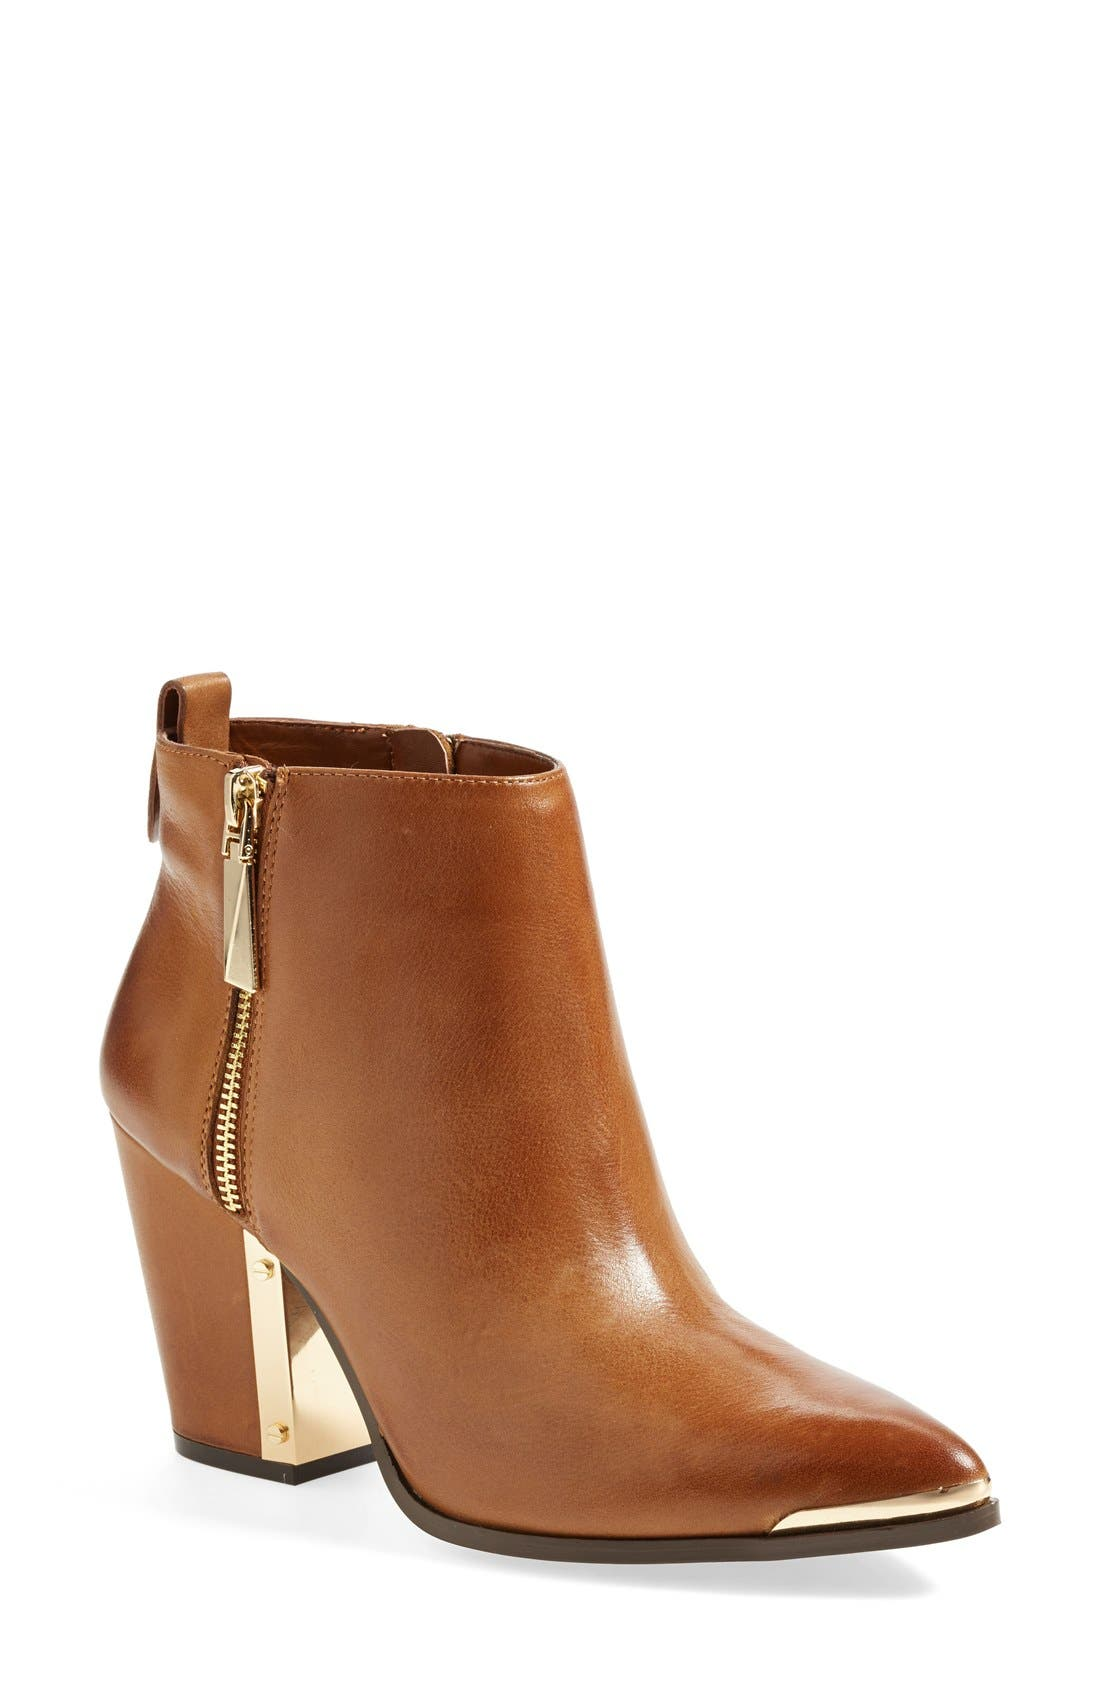 Alternate Image 1 Selected - Vince Camuto 'Amori' Pointy Toe Leather Bootie (Women)